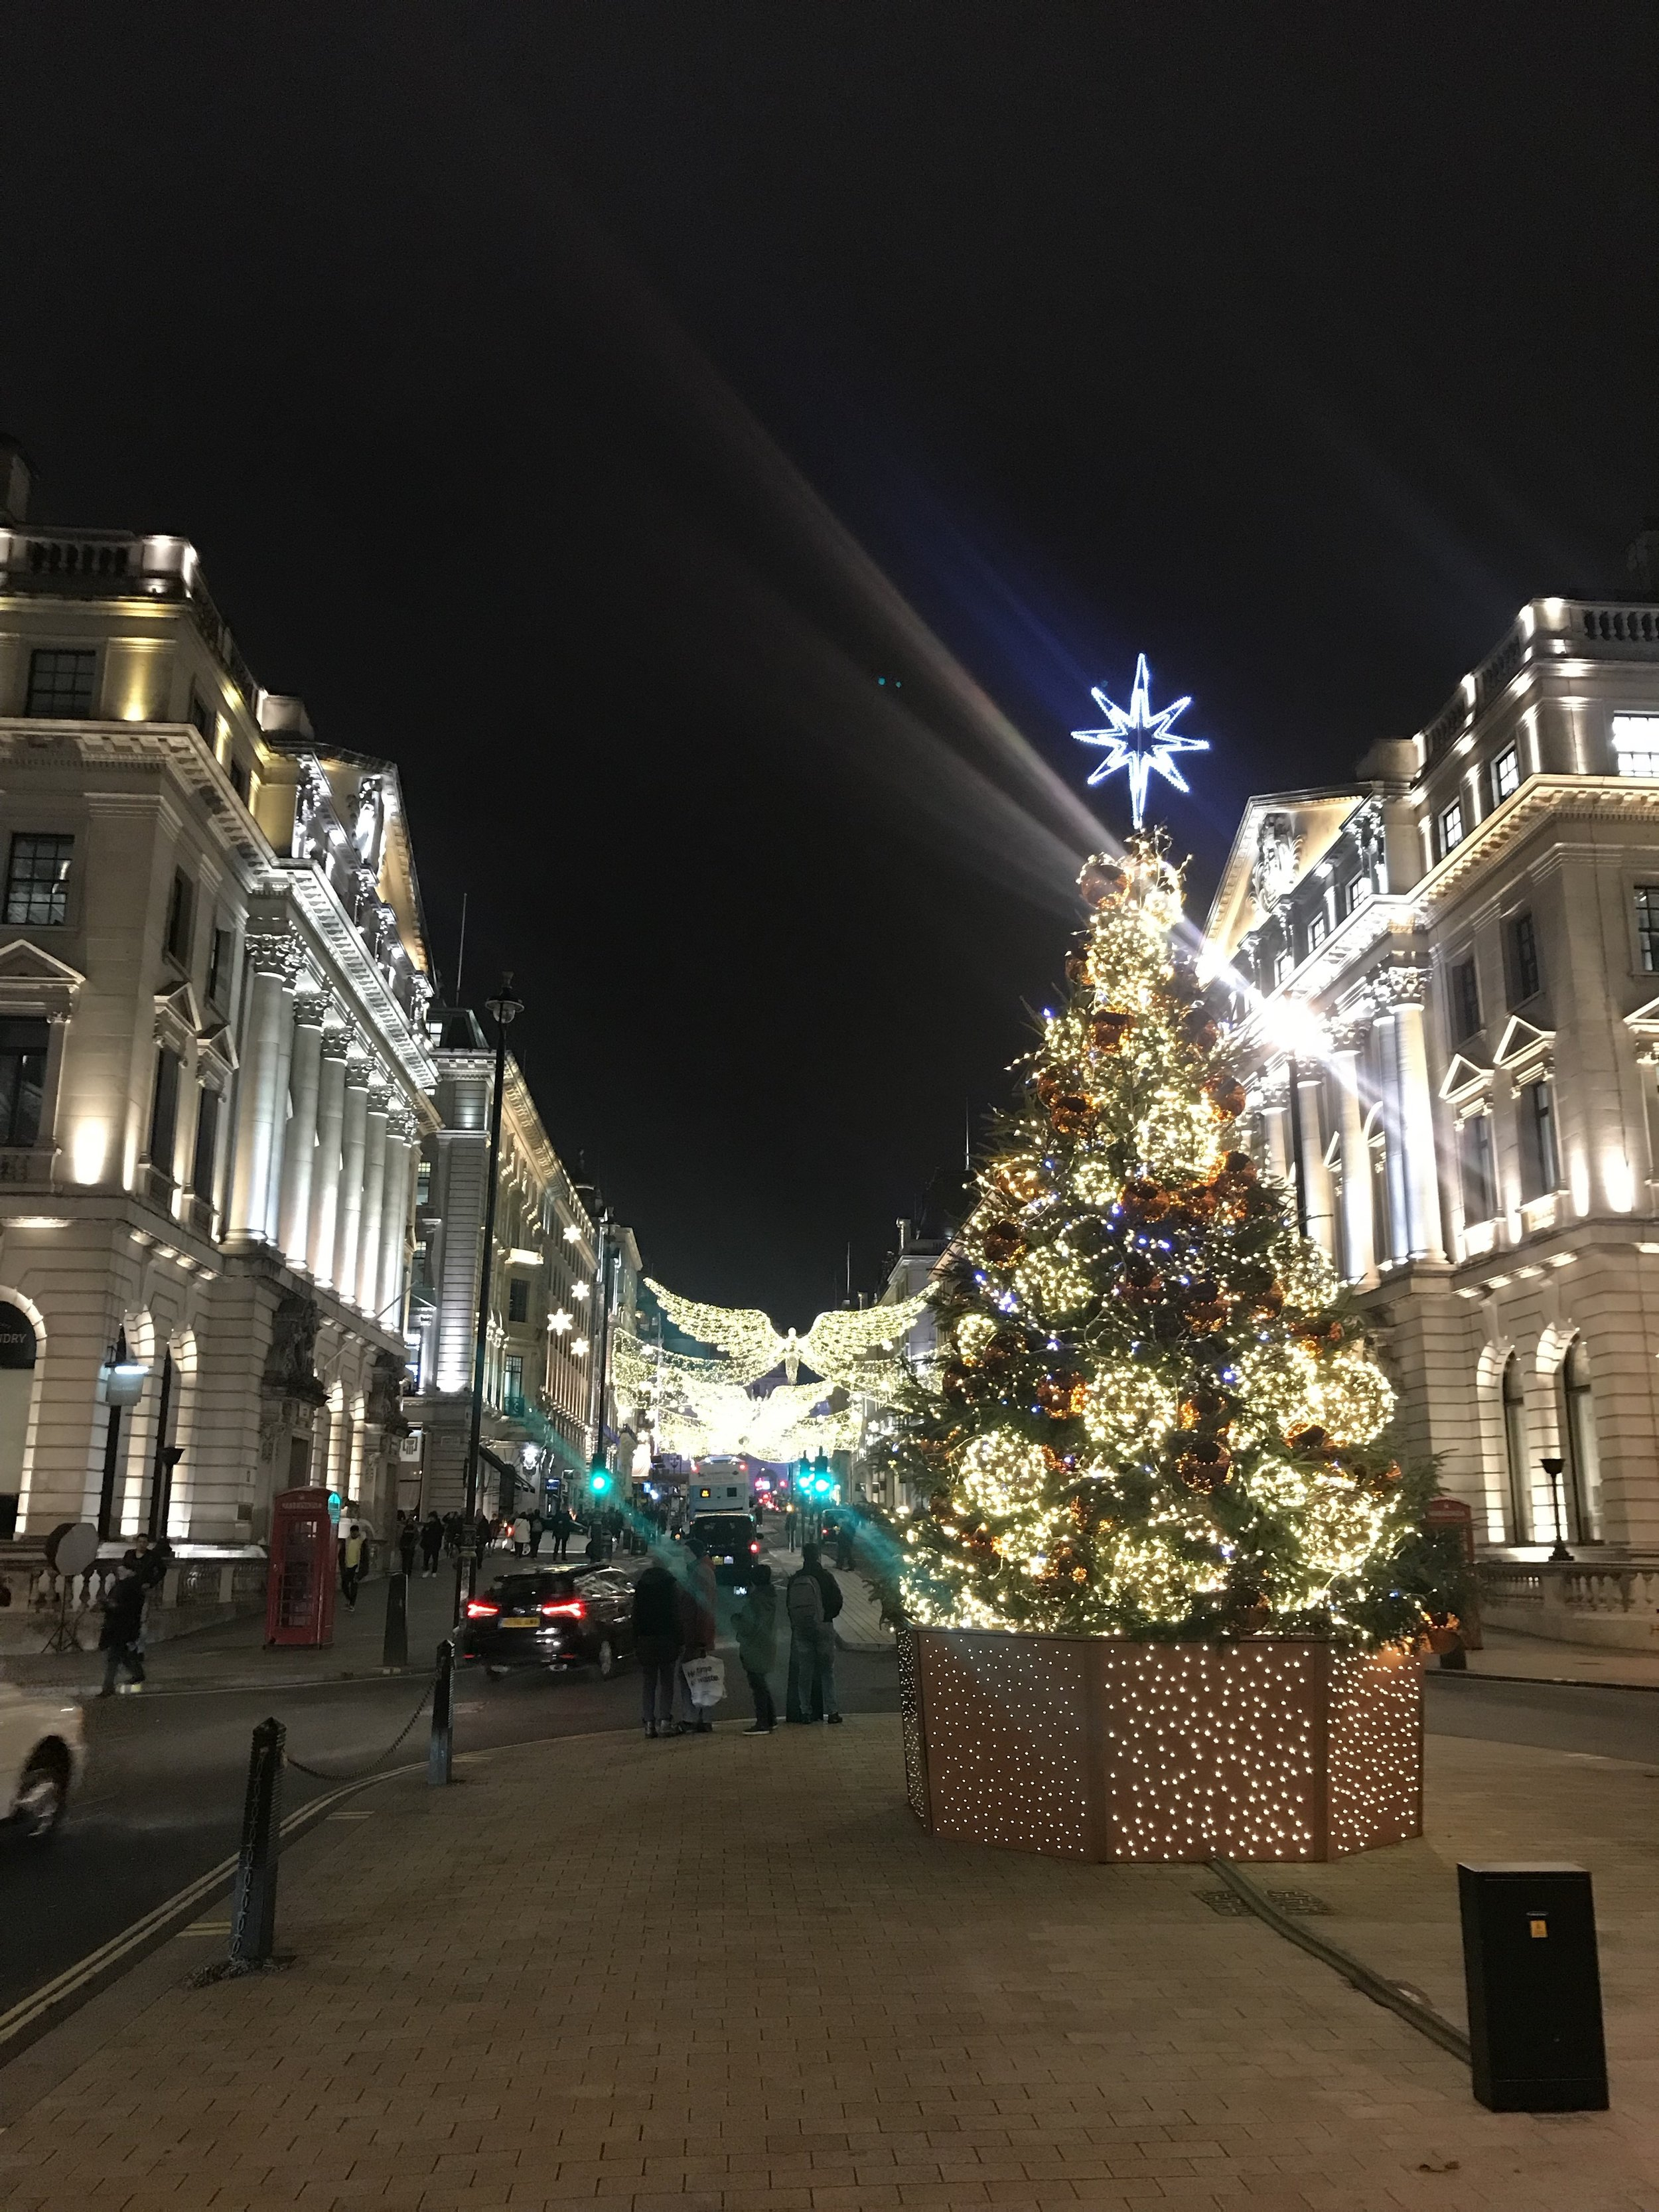 Pretty Christmas lights in London. :)